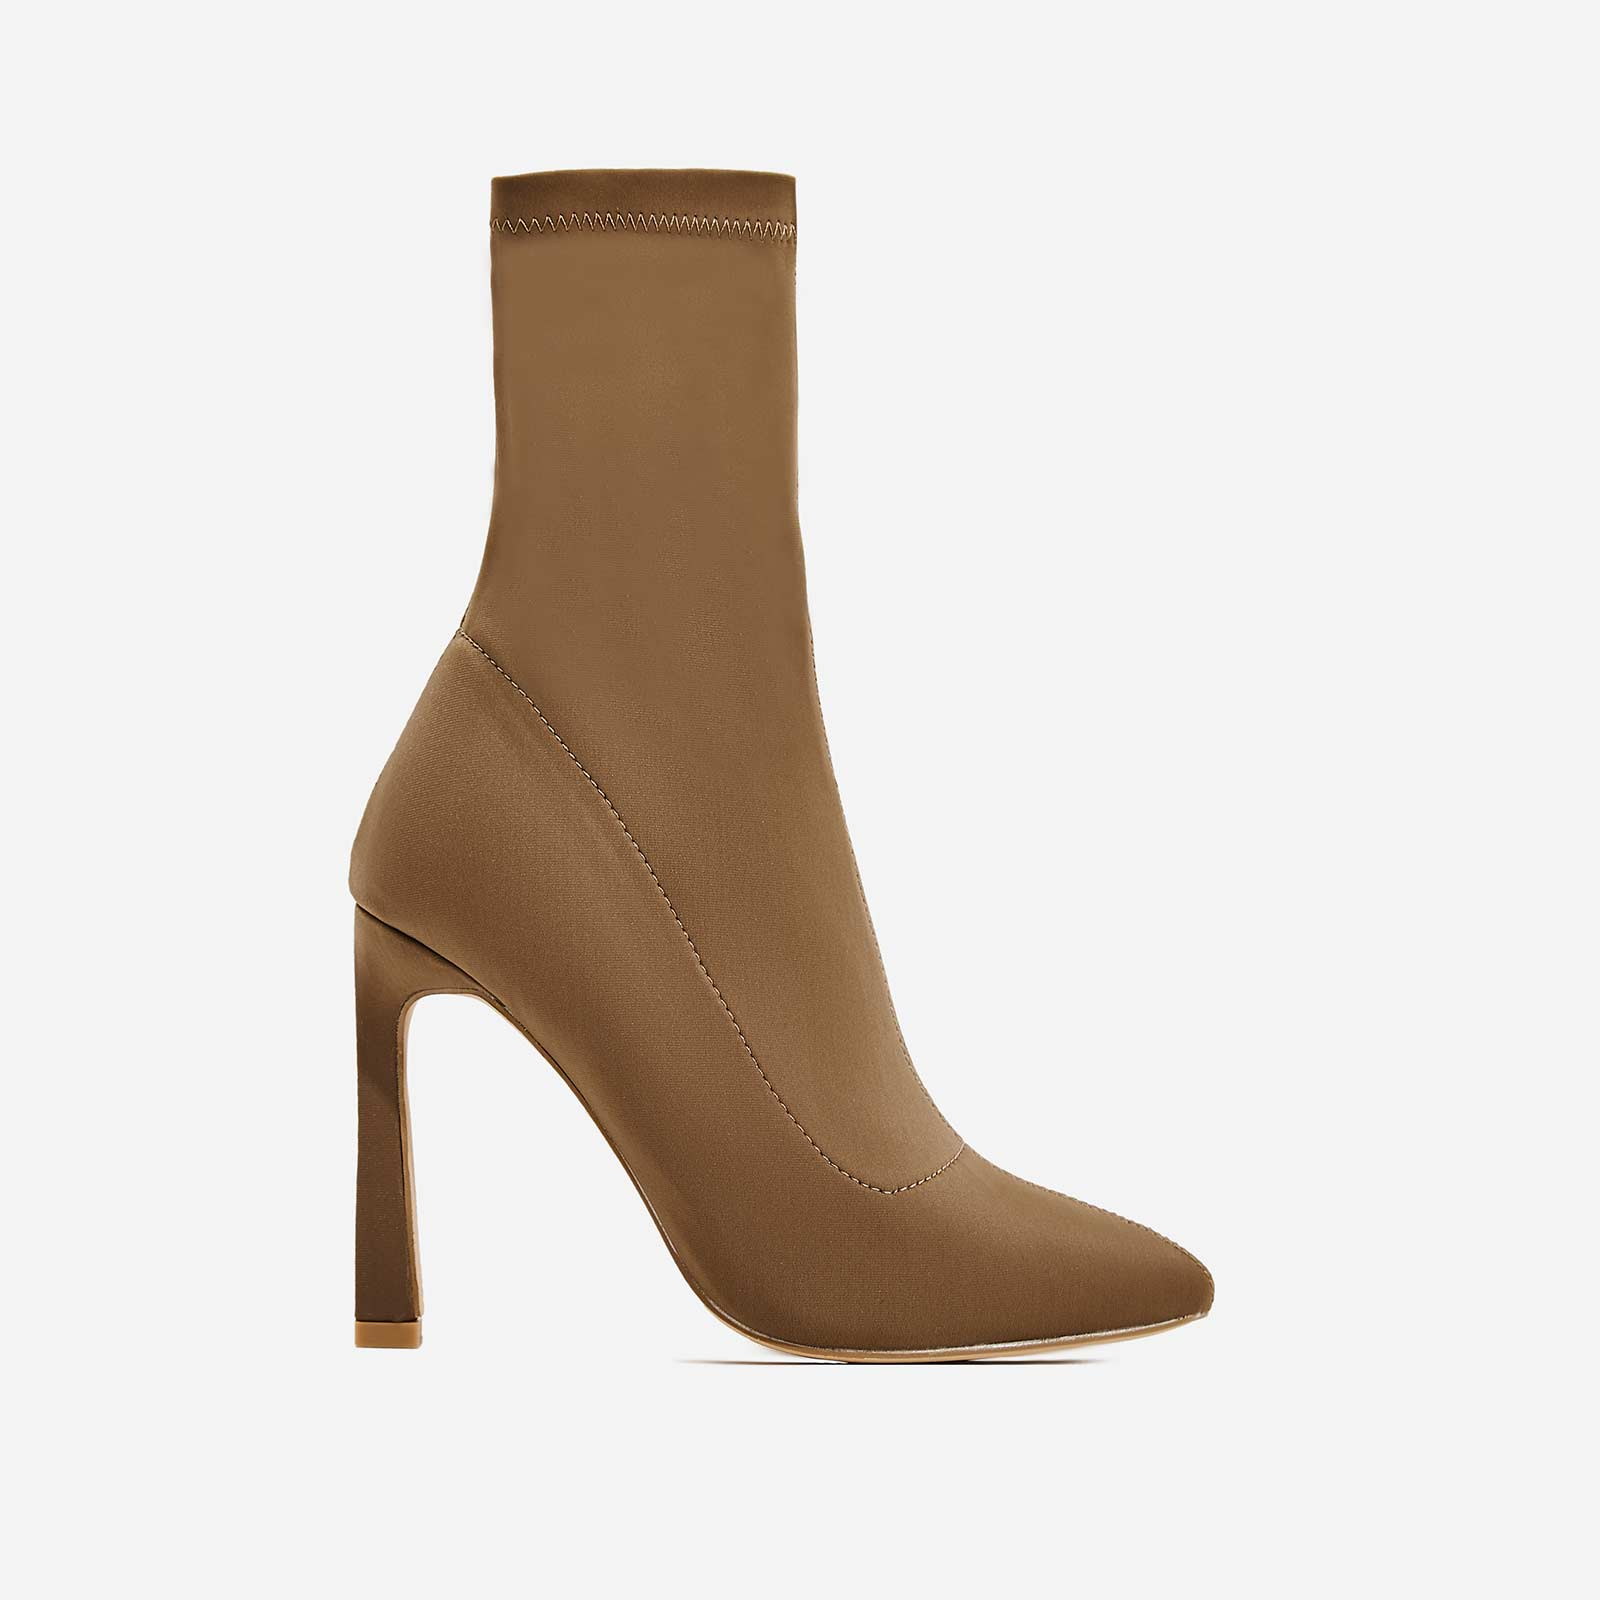 Mackenzie Flared Stiletto Heel Ankle Sock Boot In Khaki Lycra